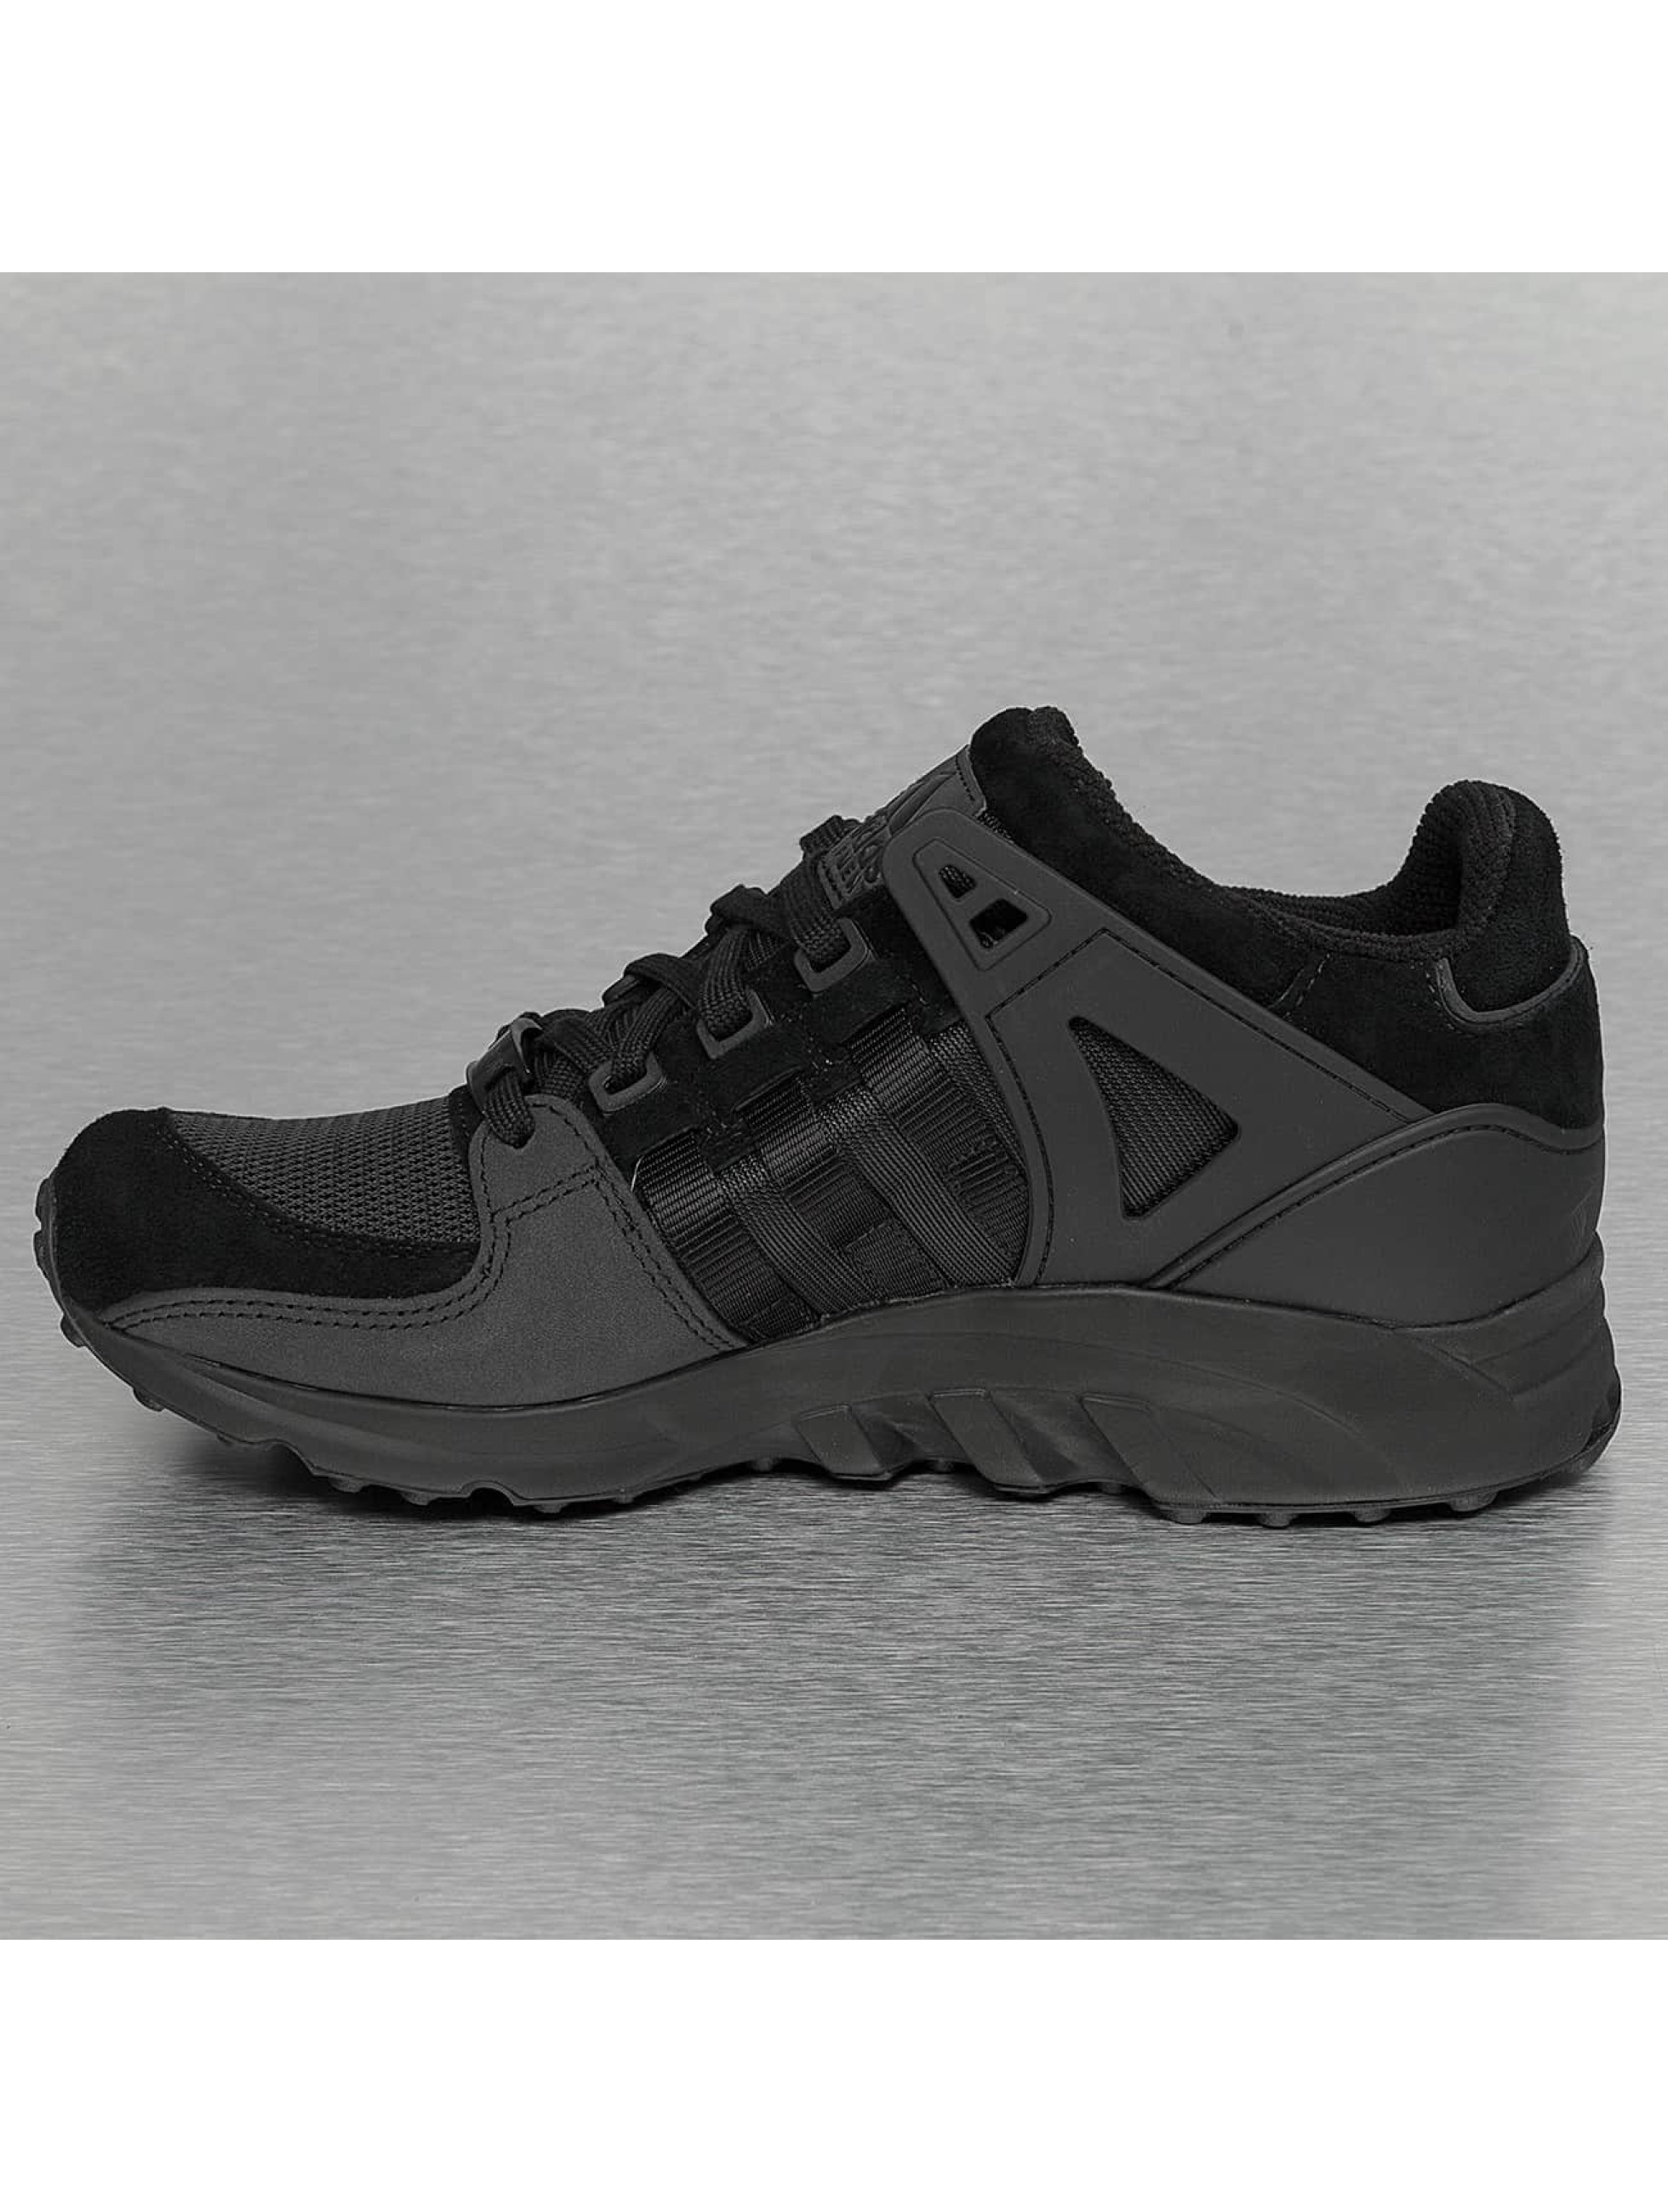 adidas Sneaker Equipment nero